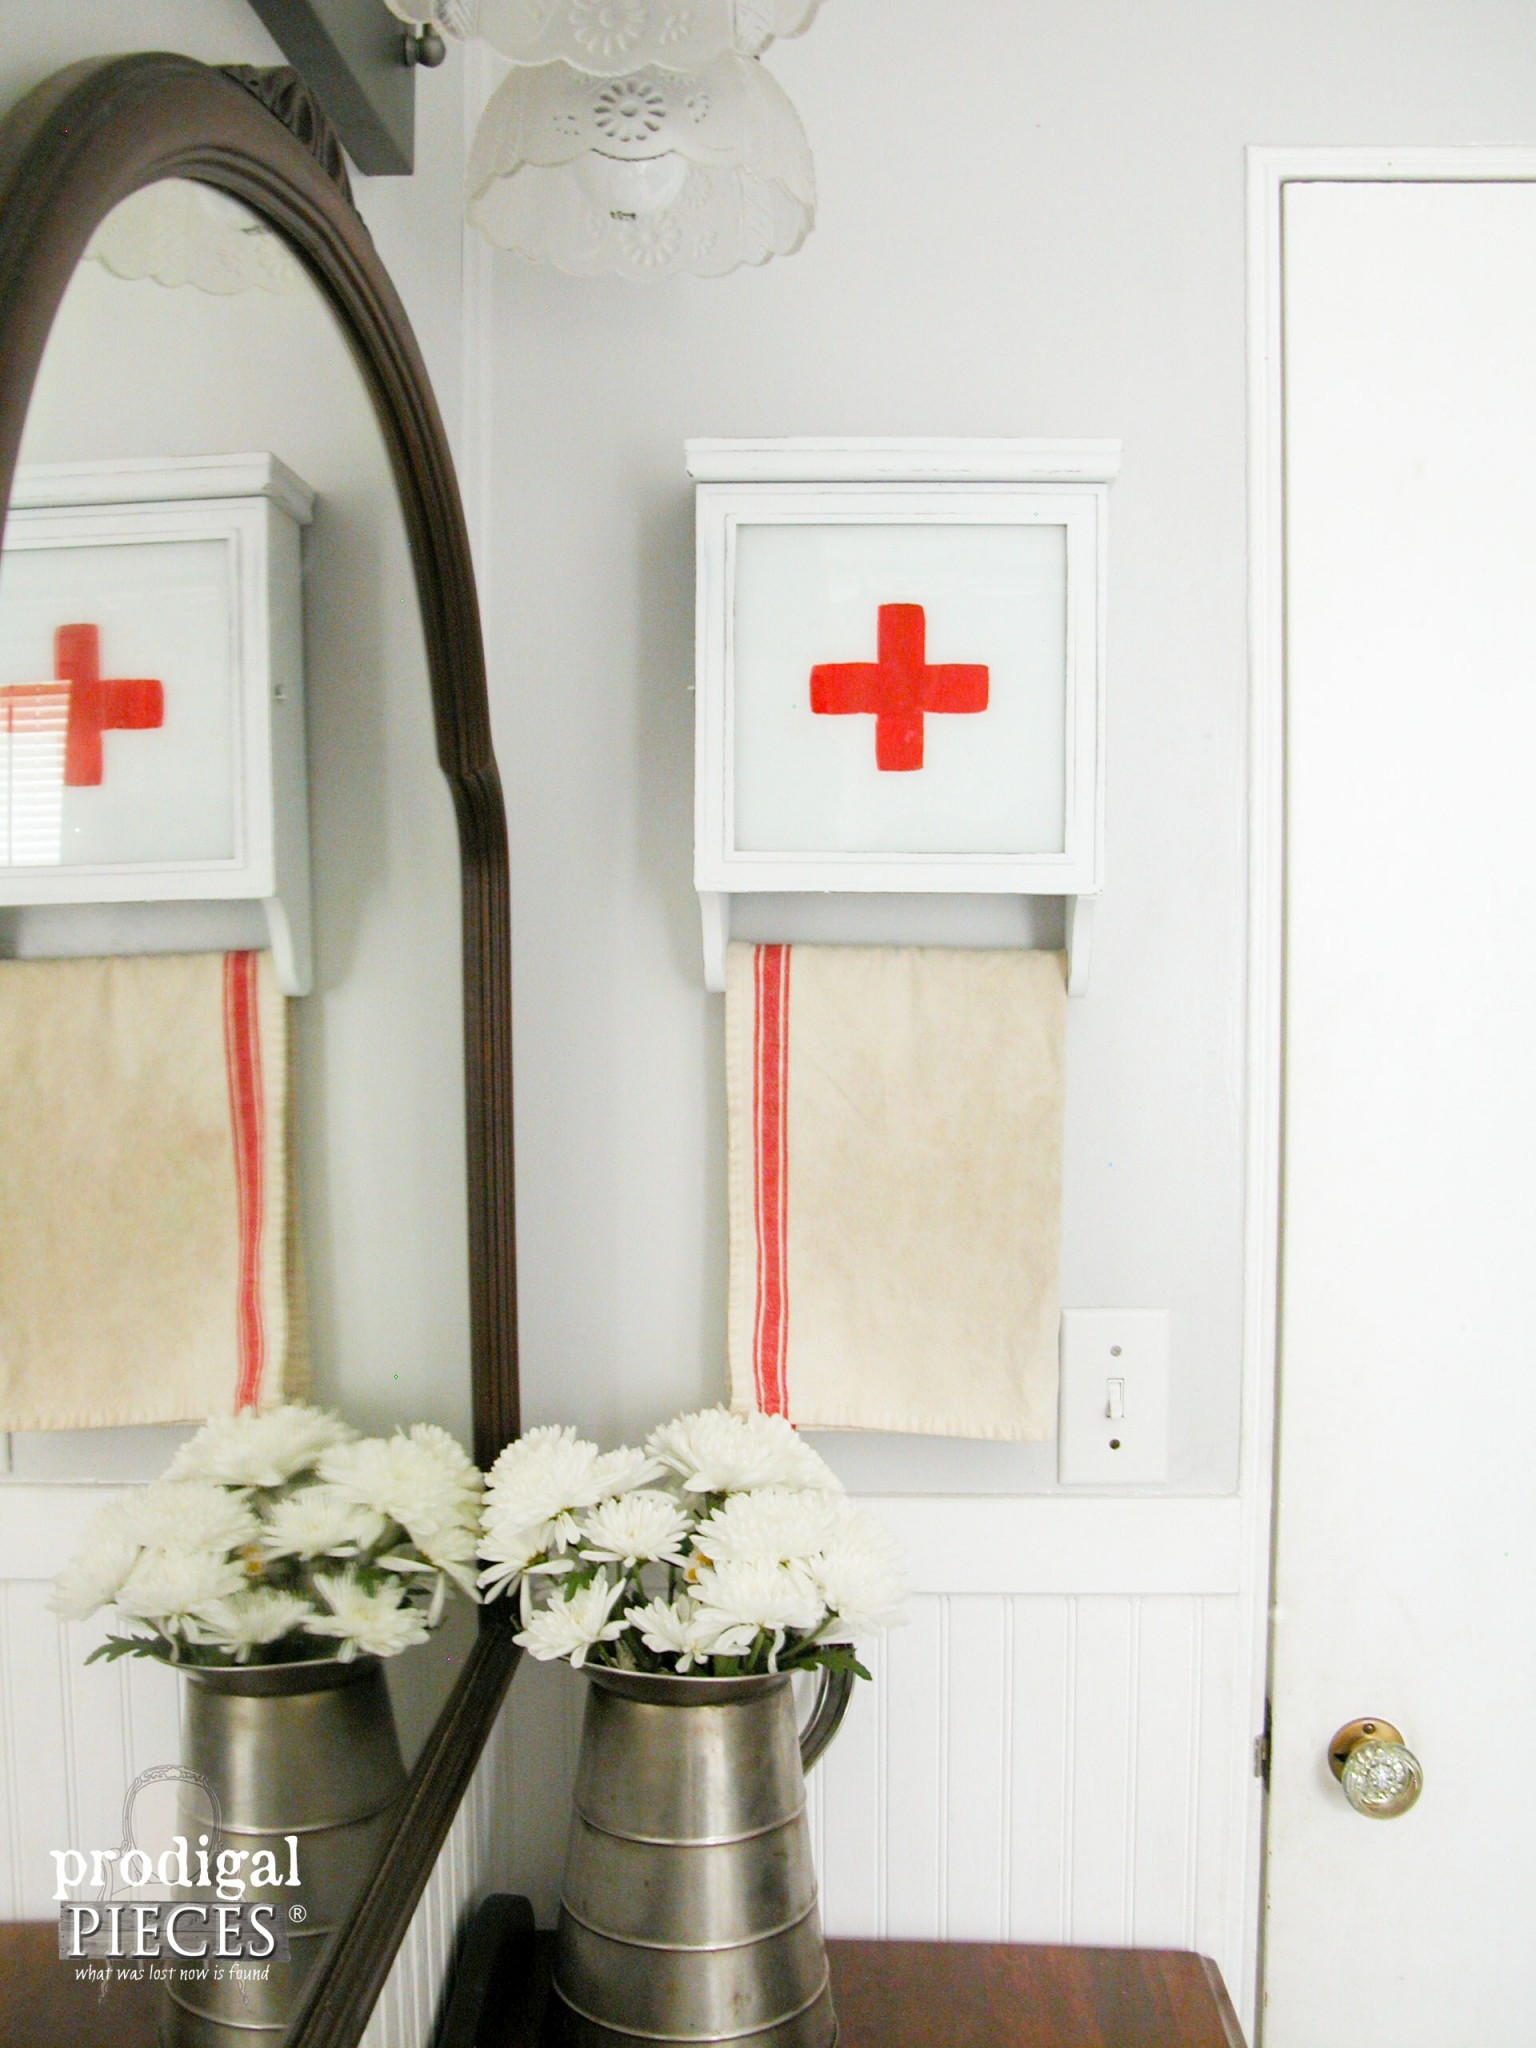 Vintage Wall Clock turned into Swiss Medical Kit by Prodigal Pieces | www.prodigalpieces.com